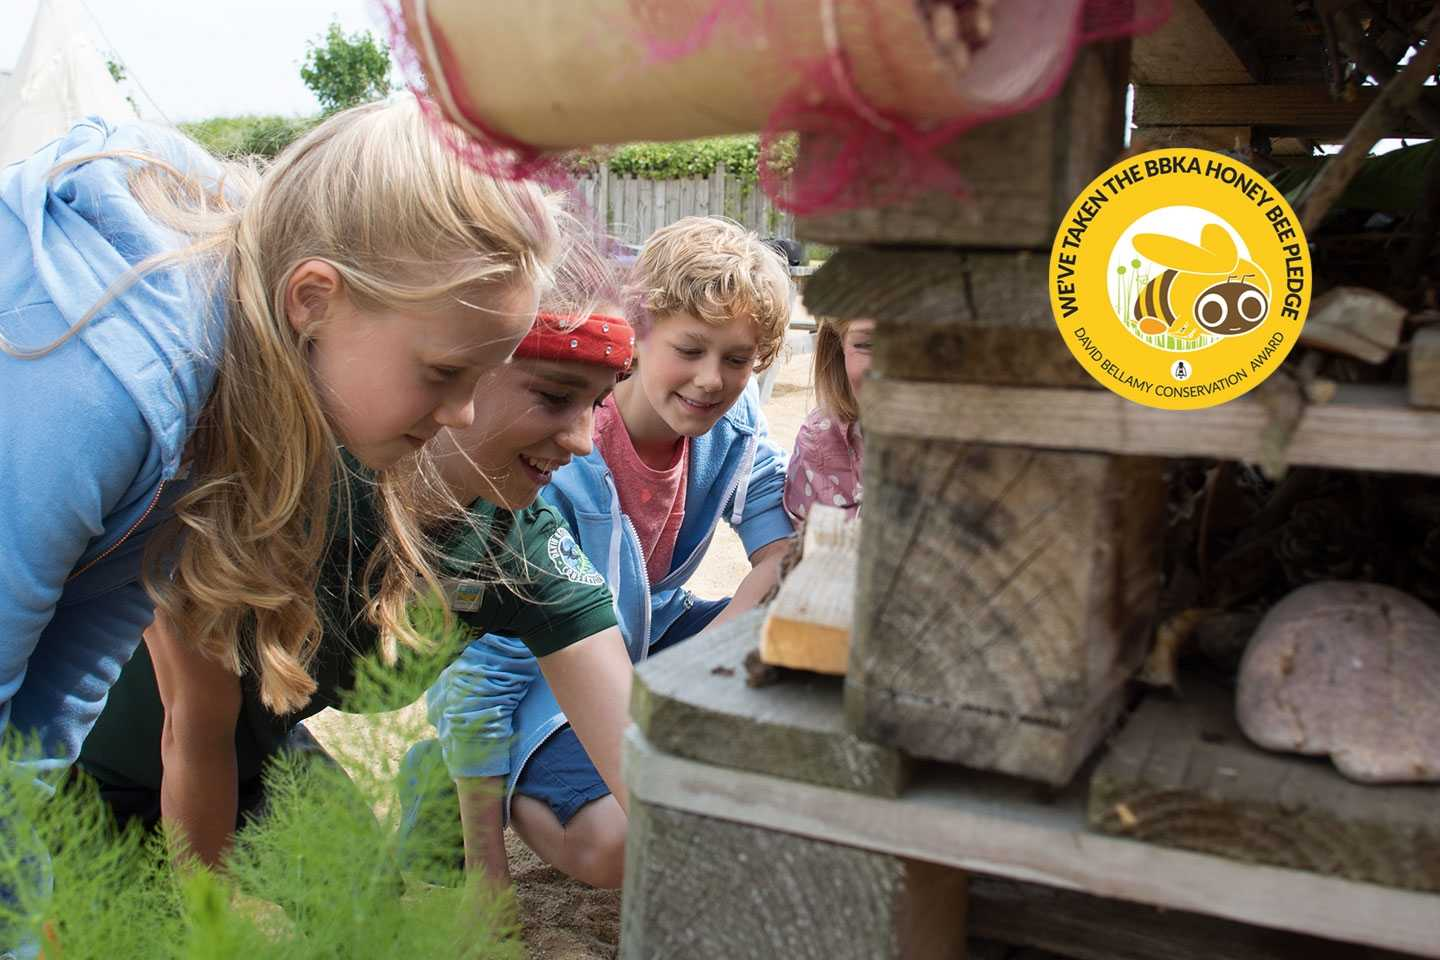 Bug hotel with the Honey Bee Pledge logo